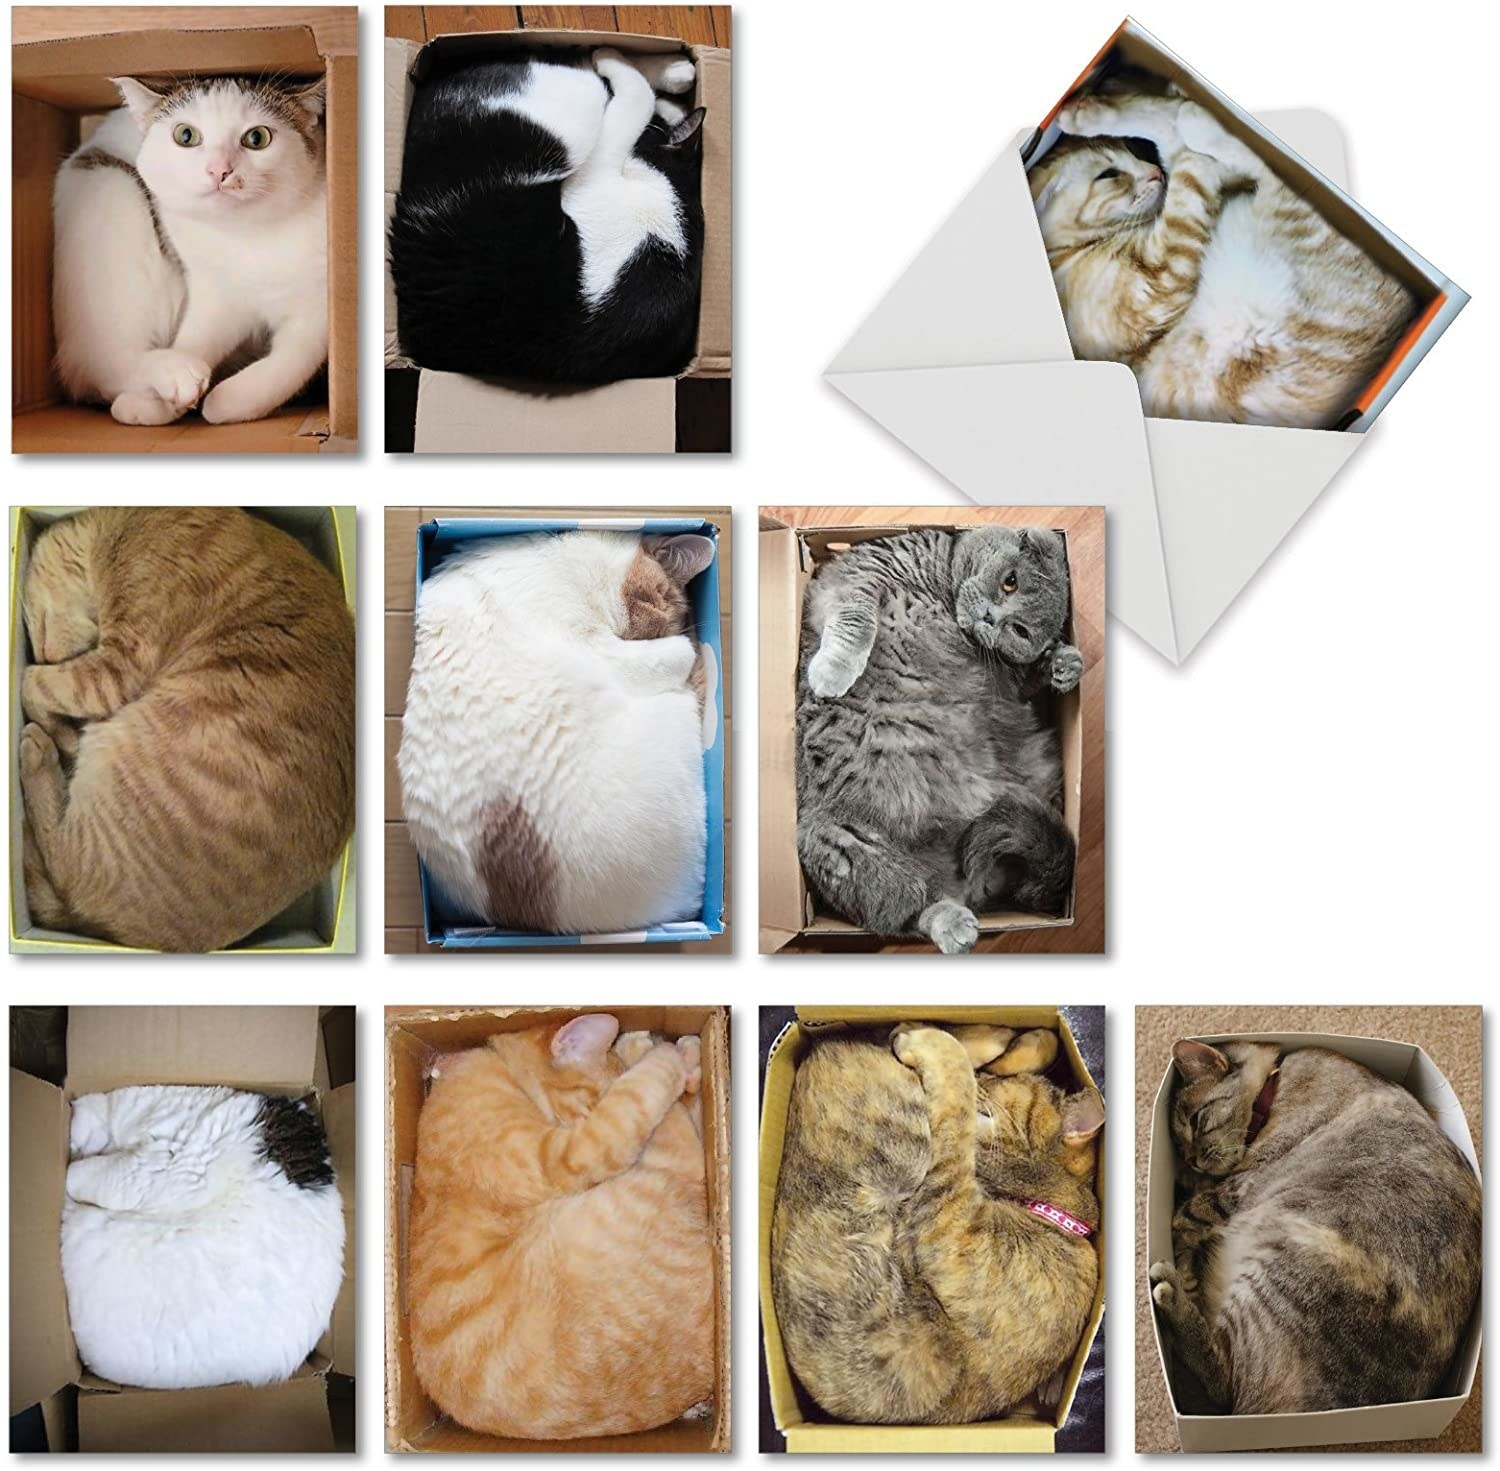 Cards with images of cats smushed into boxes